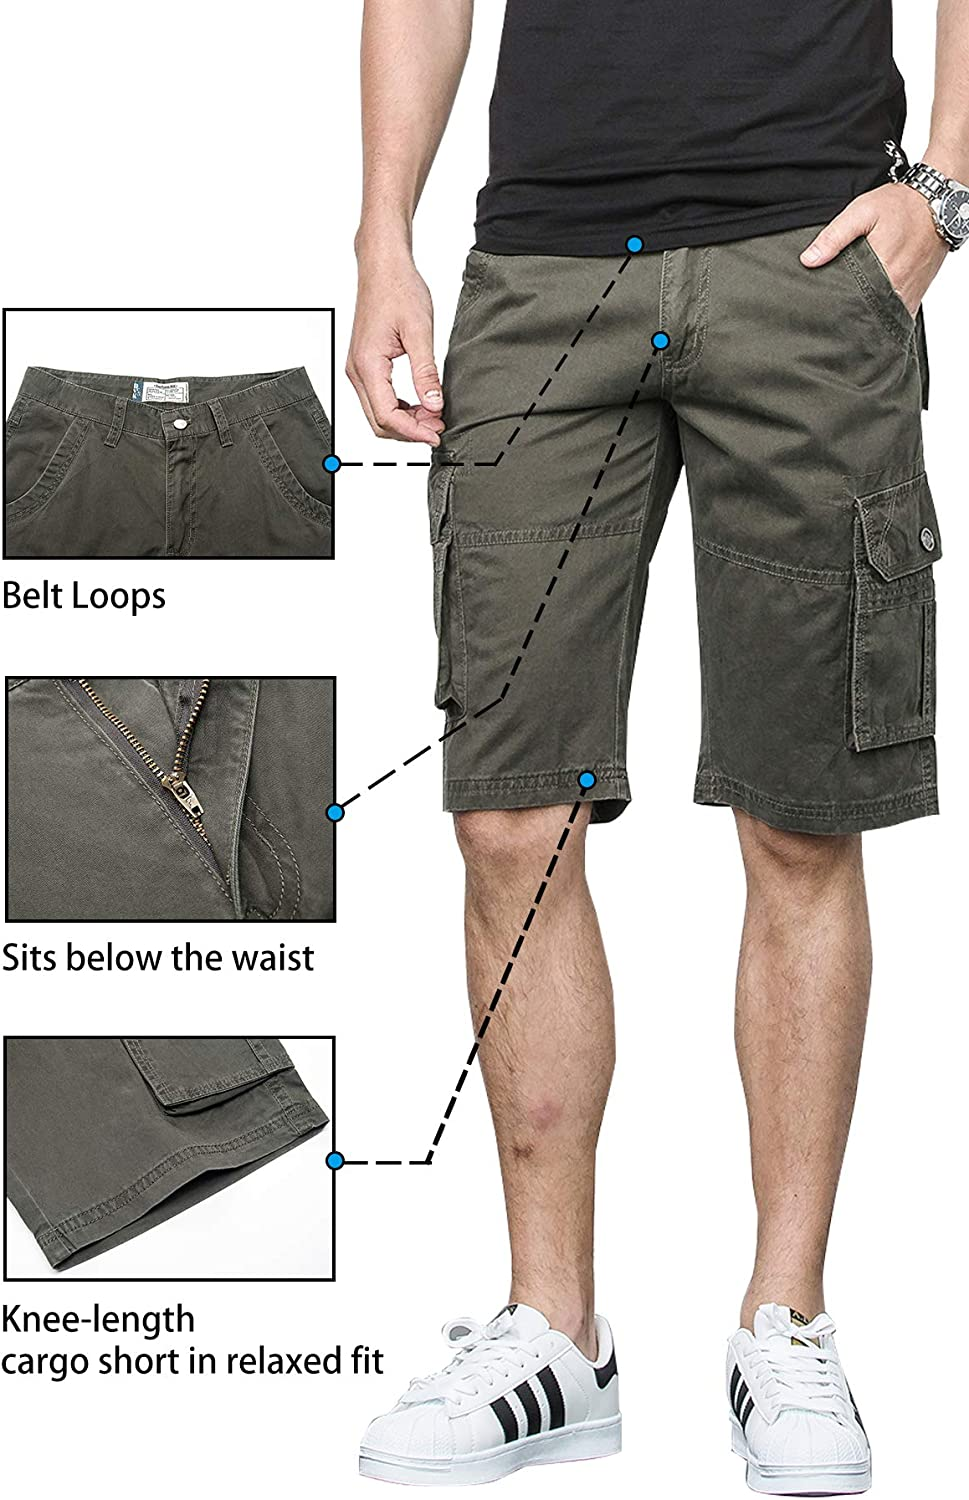 42, D3211-Army Green Cyparissus Cargo Shorts for Men